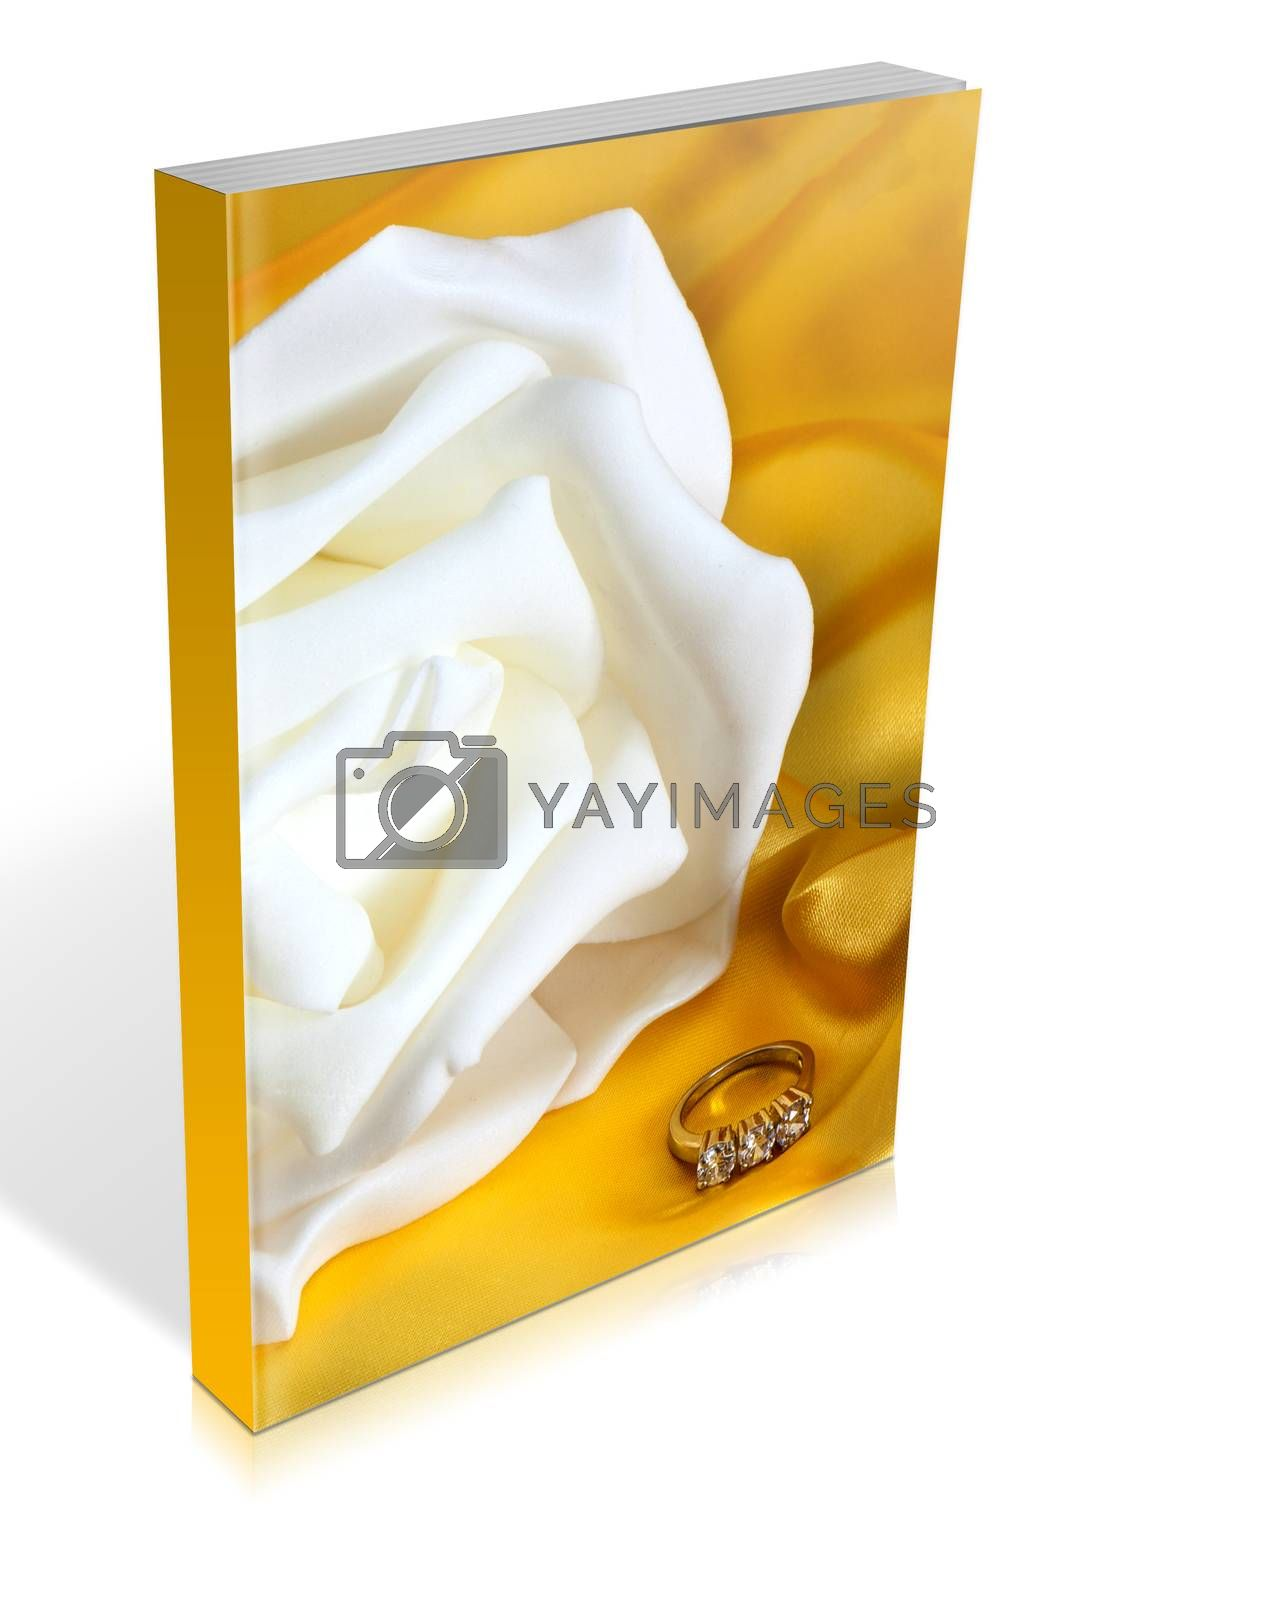 book of  wedding rings on  a yellow fabric background